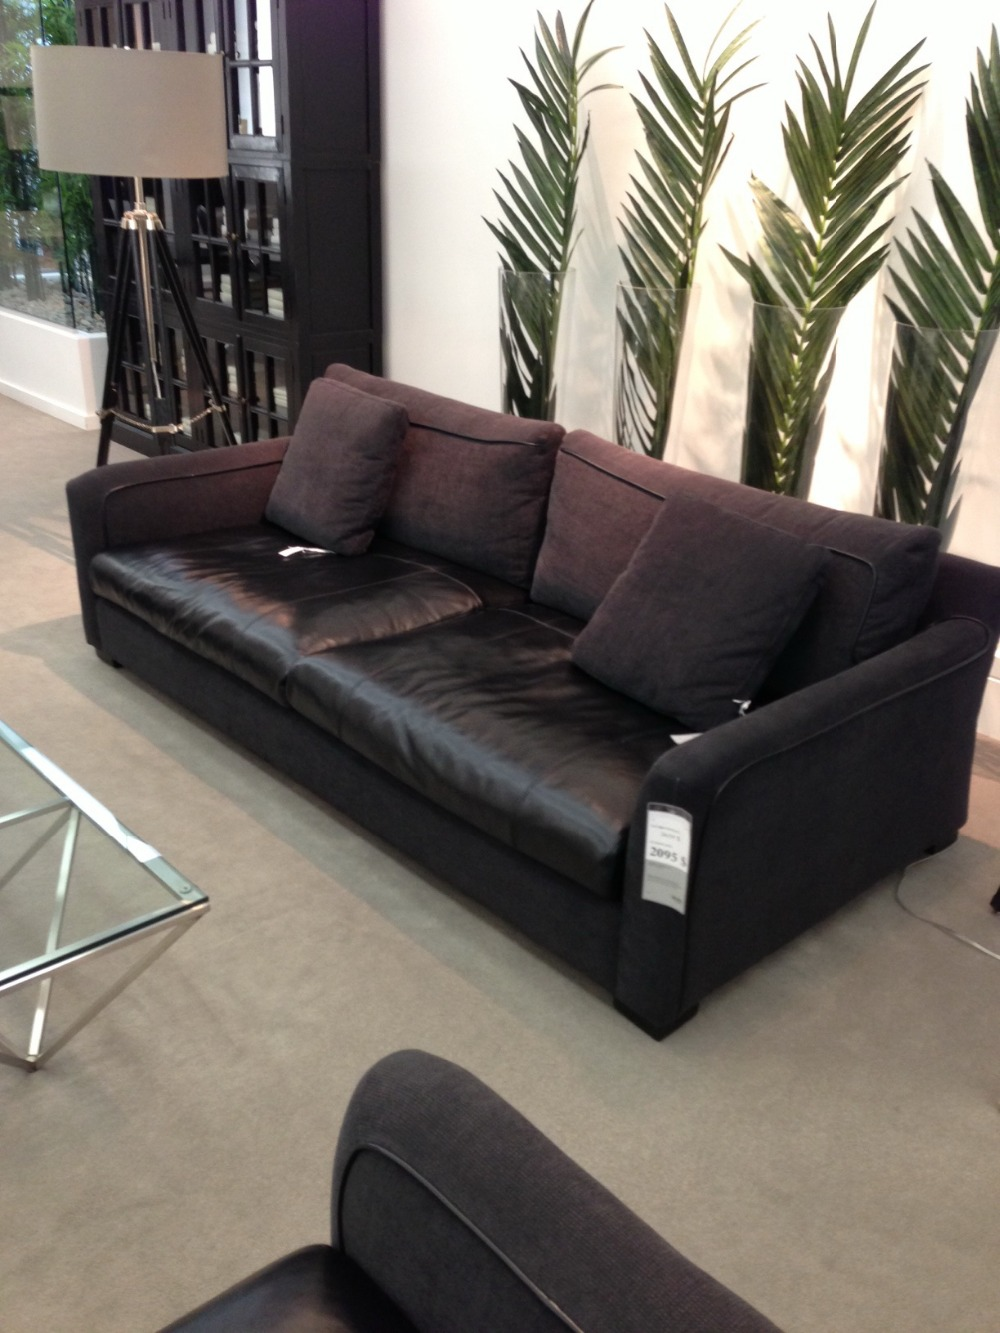 Fascinating 10 living room furniture prices in ghana for Buy sofa online usa